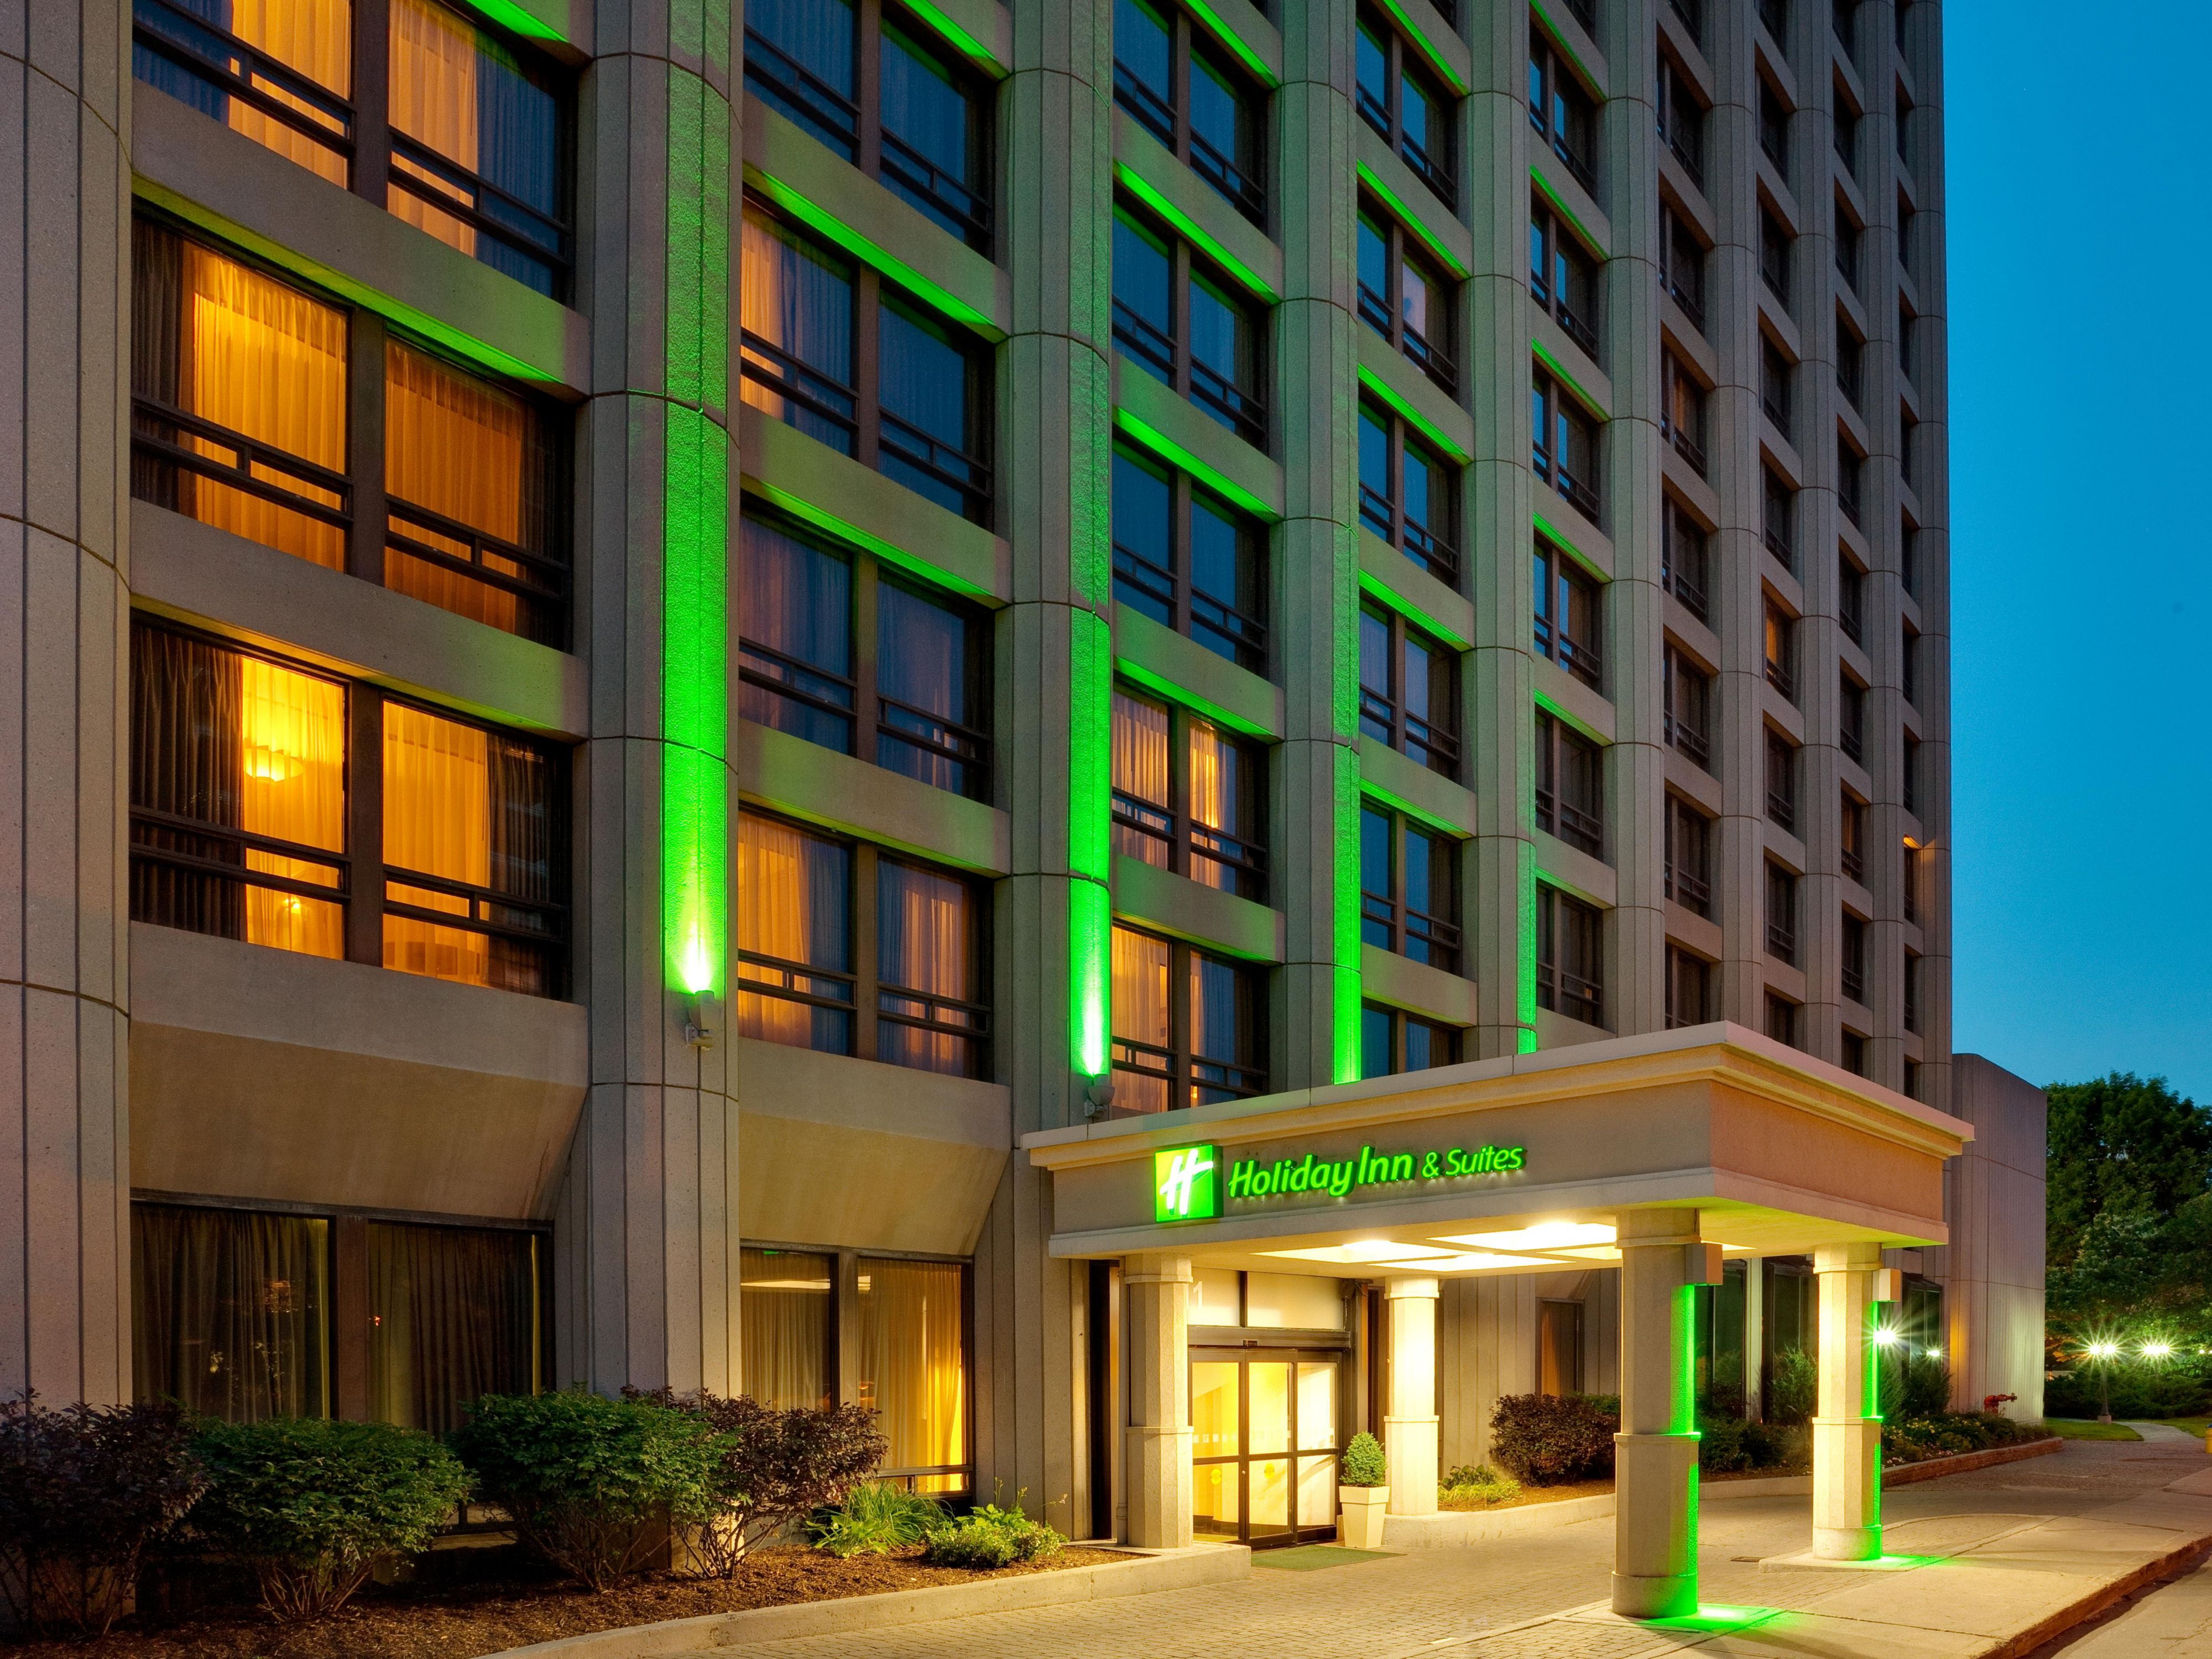 Welcome to Holiday Inn & Suites Ottawa Downtown